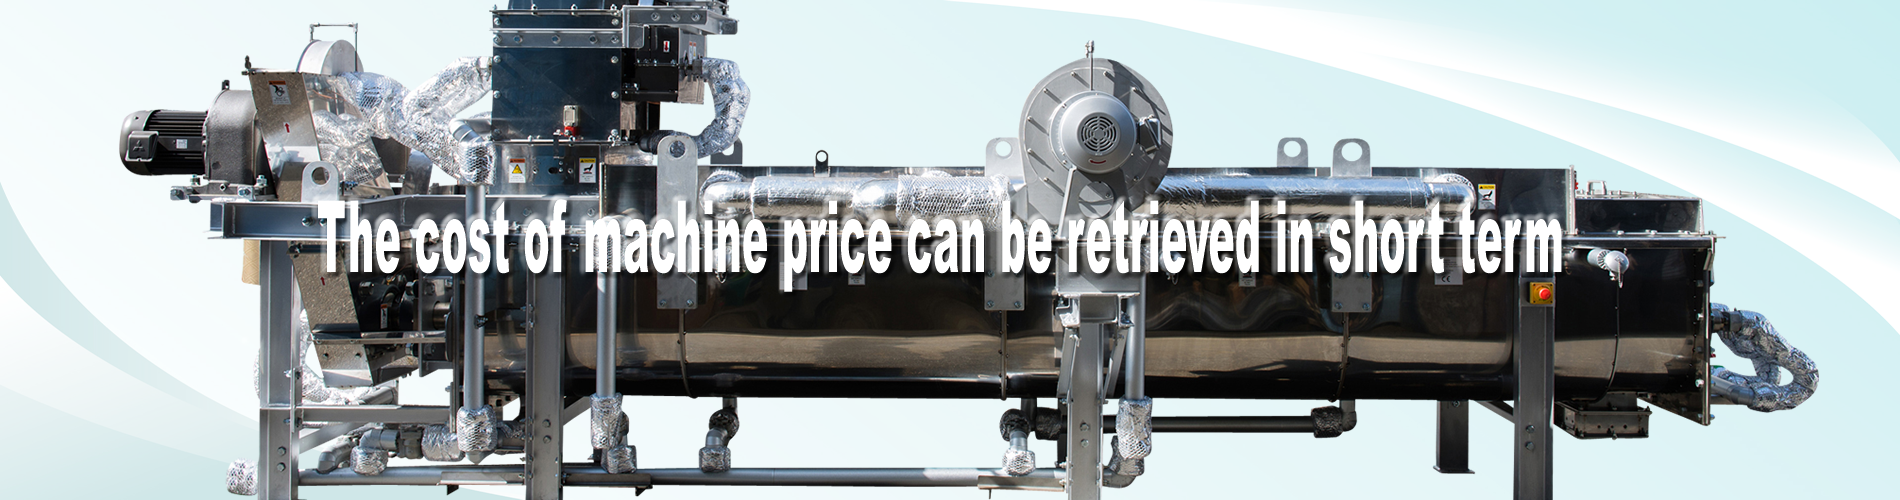 the cost of machine price can be retrieved in short term